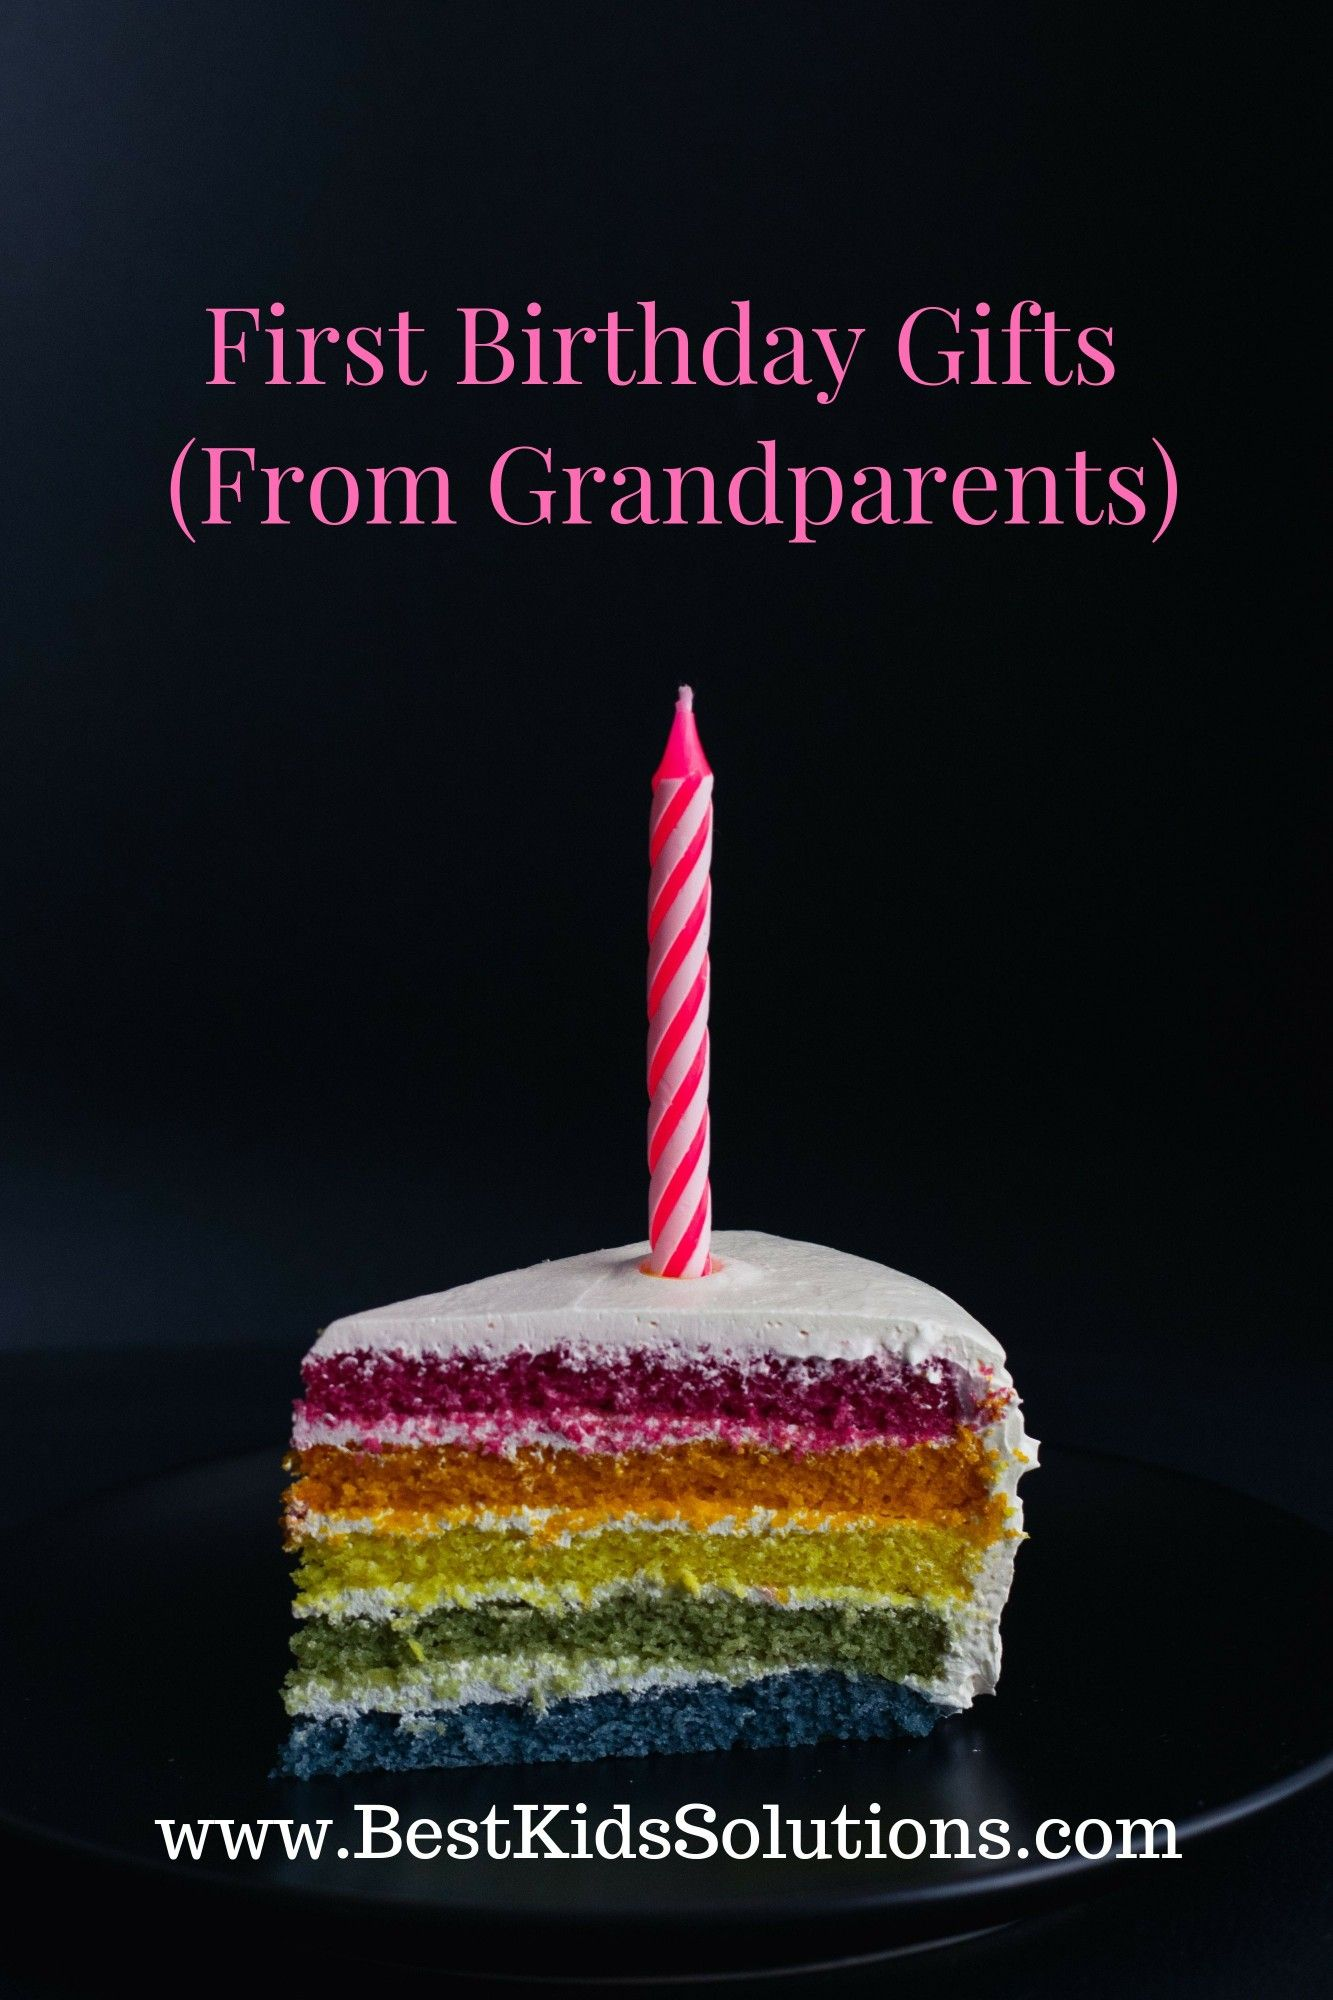 First Gifts Grandparents Birthdays Grandkids Party Gift Ideas Birthday Planning